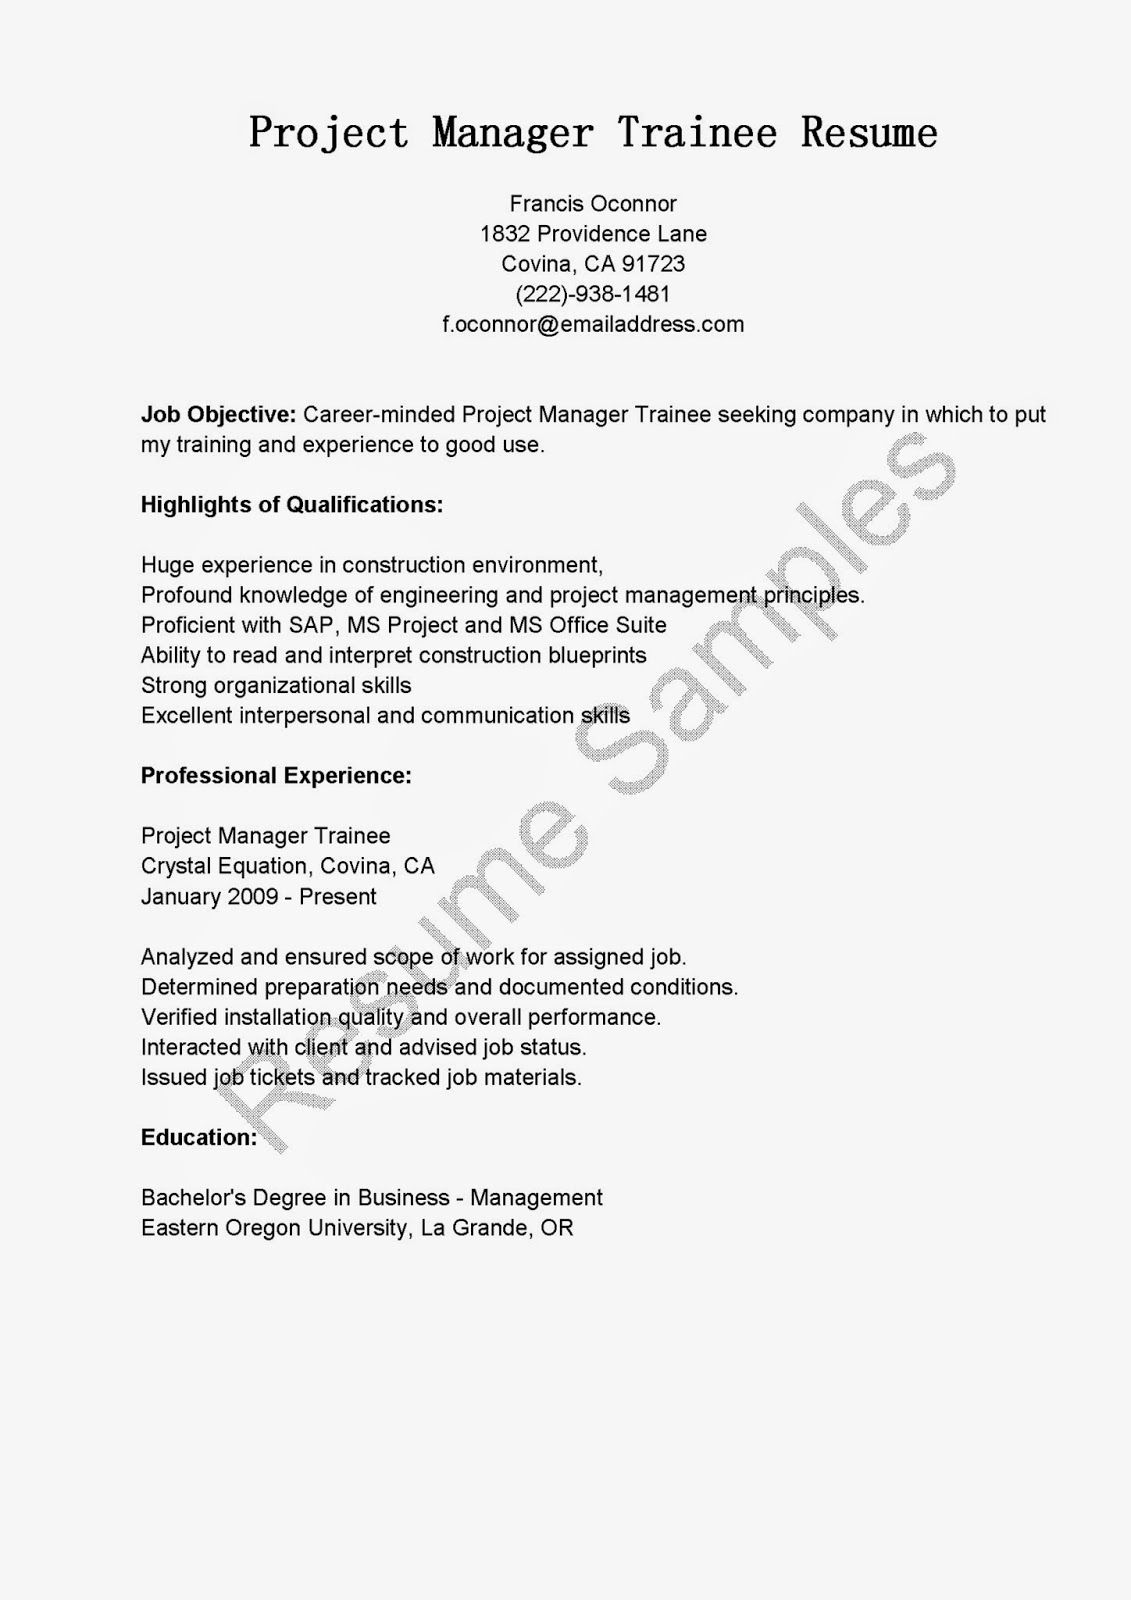 Project Manager Trainee Resume Sample Resume Samples